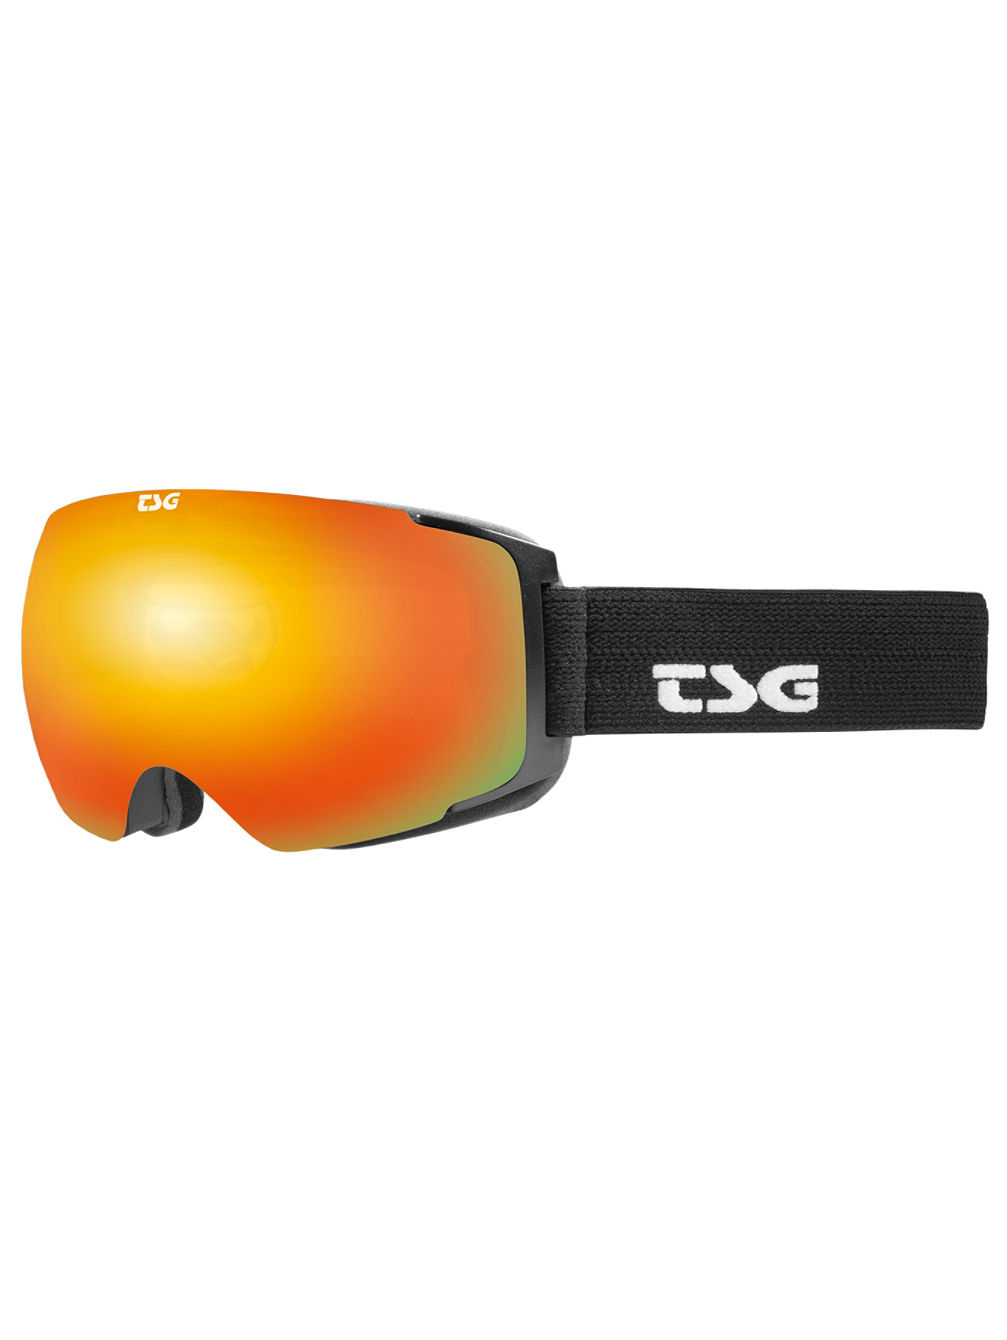 Two Solid Black Goggle